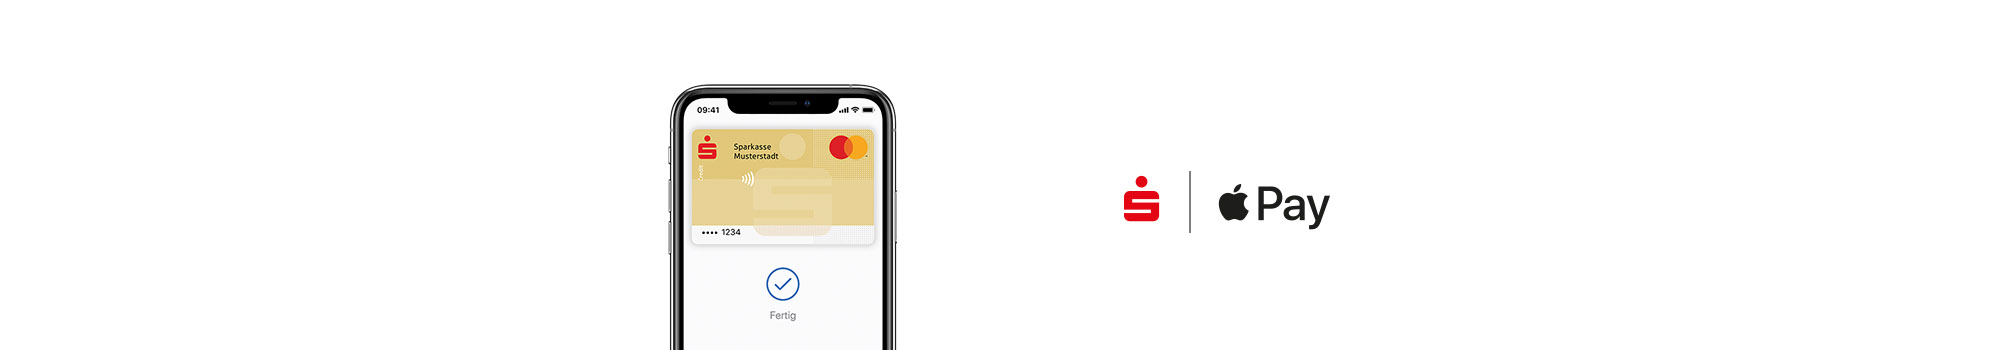 Sparkasse startet bald mit Apple Pay